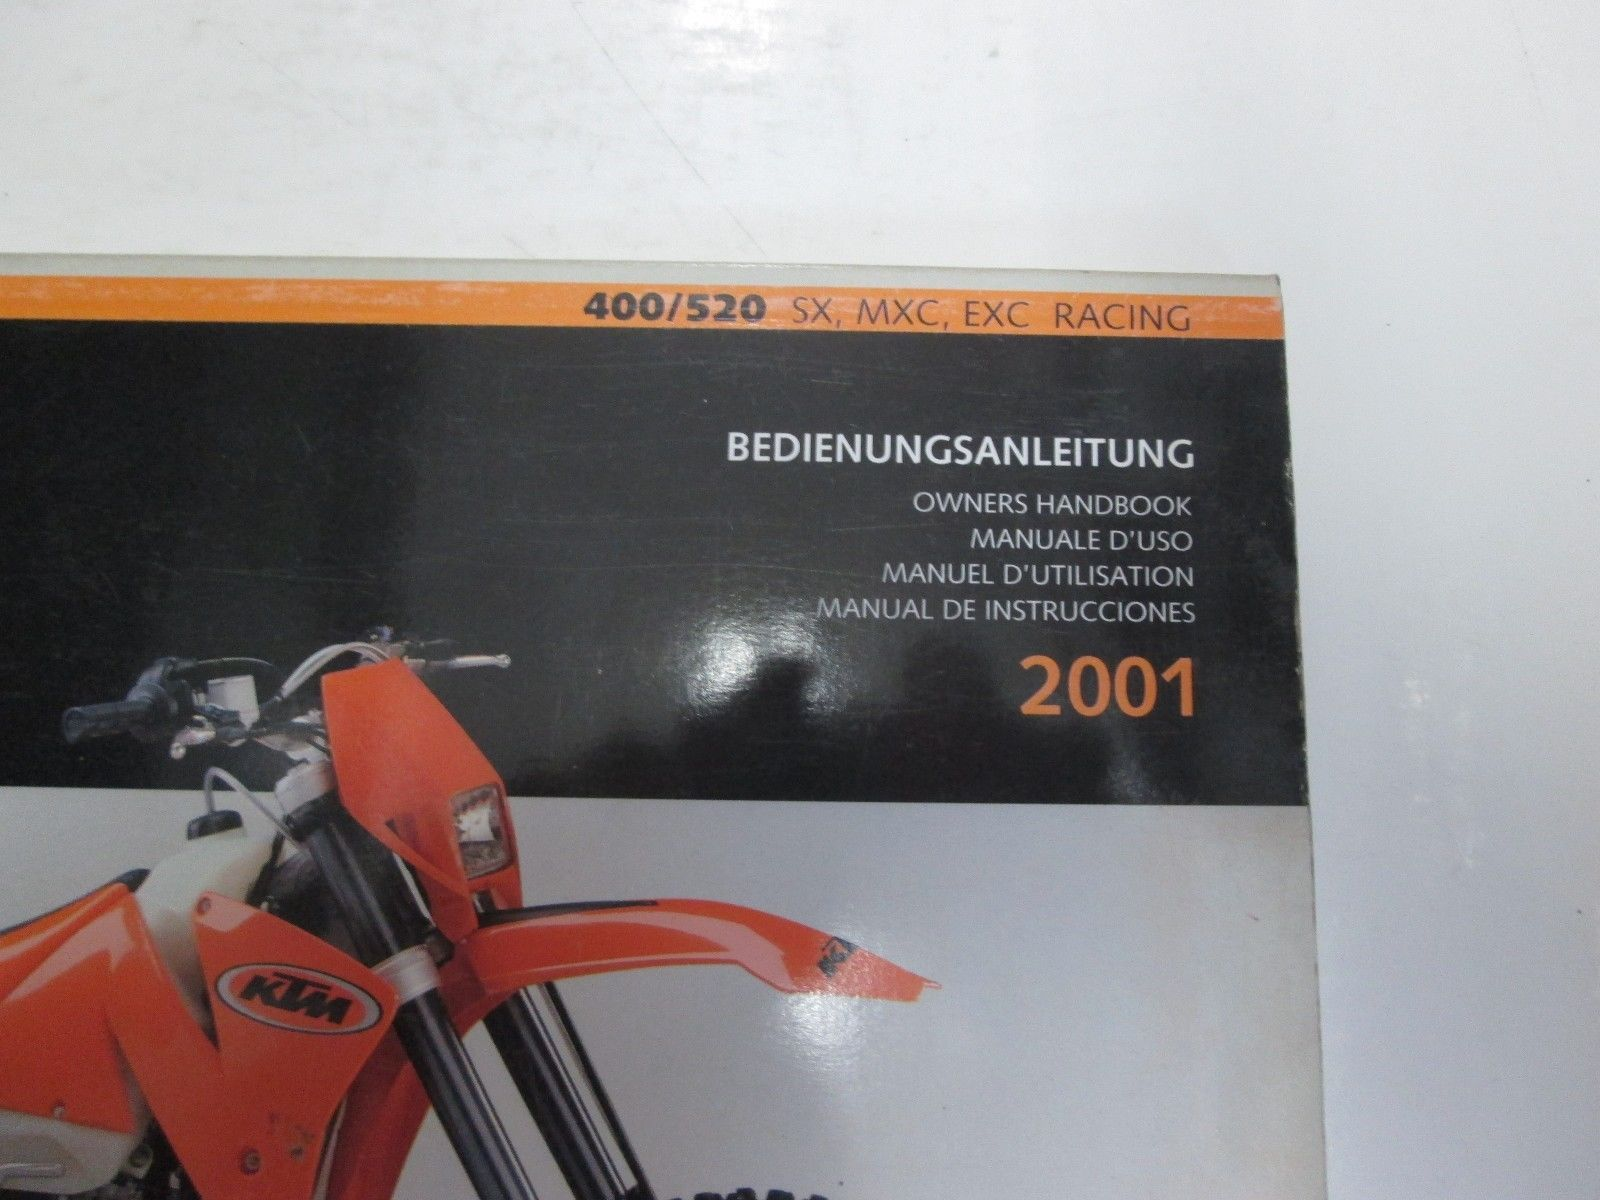 hight resolution of 2001 ktm 400 520 sx mxc exc racing sport owners handbook worn stained oem